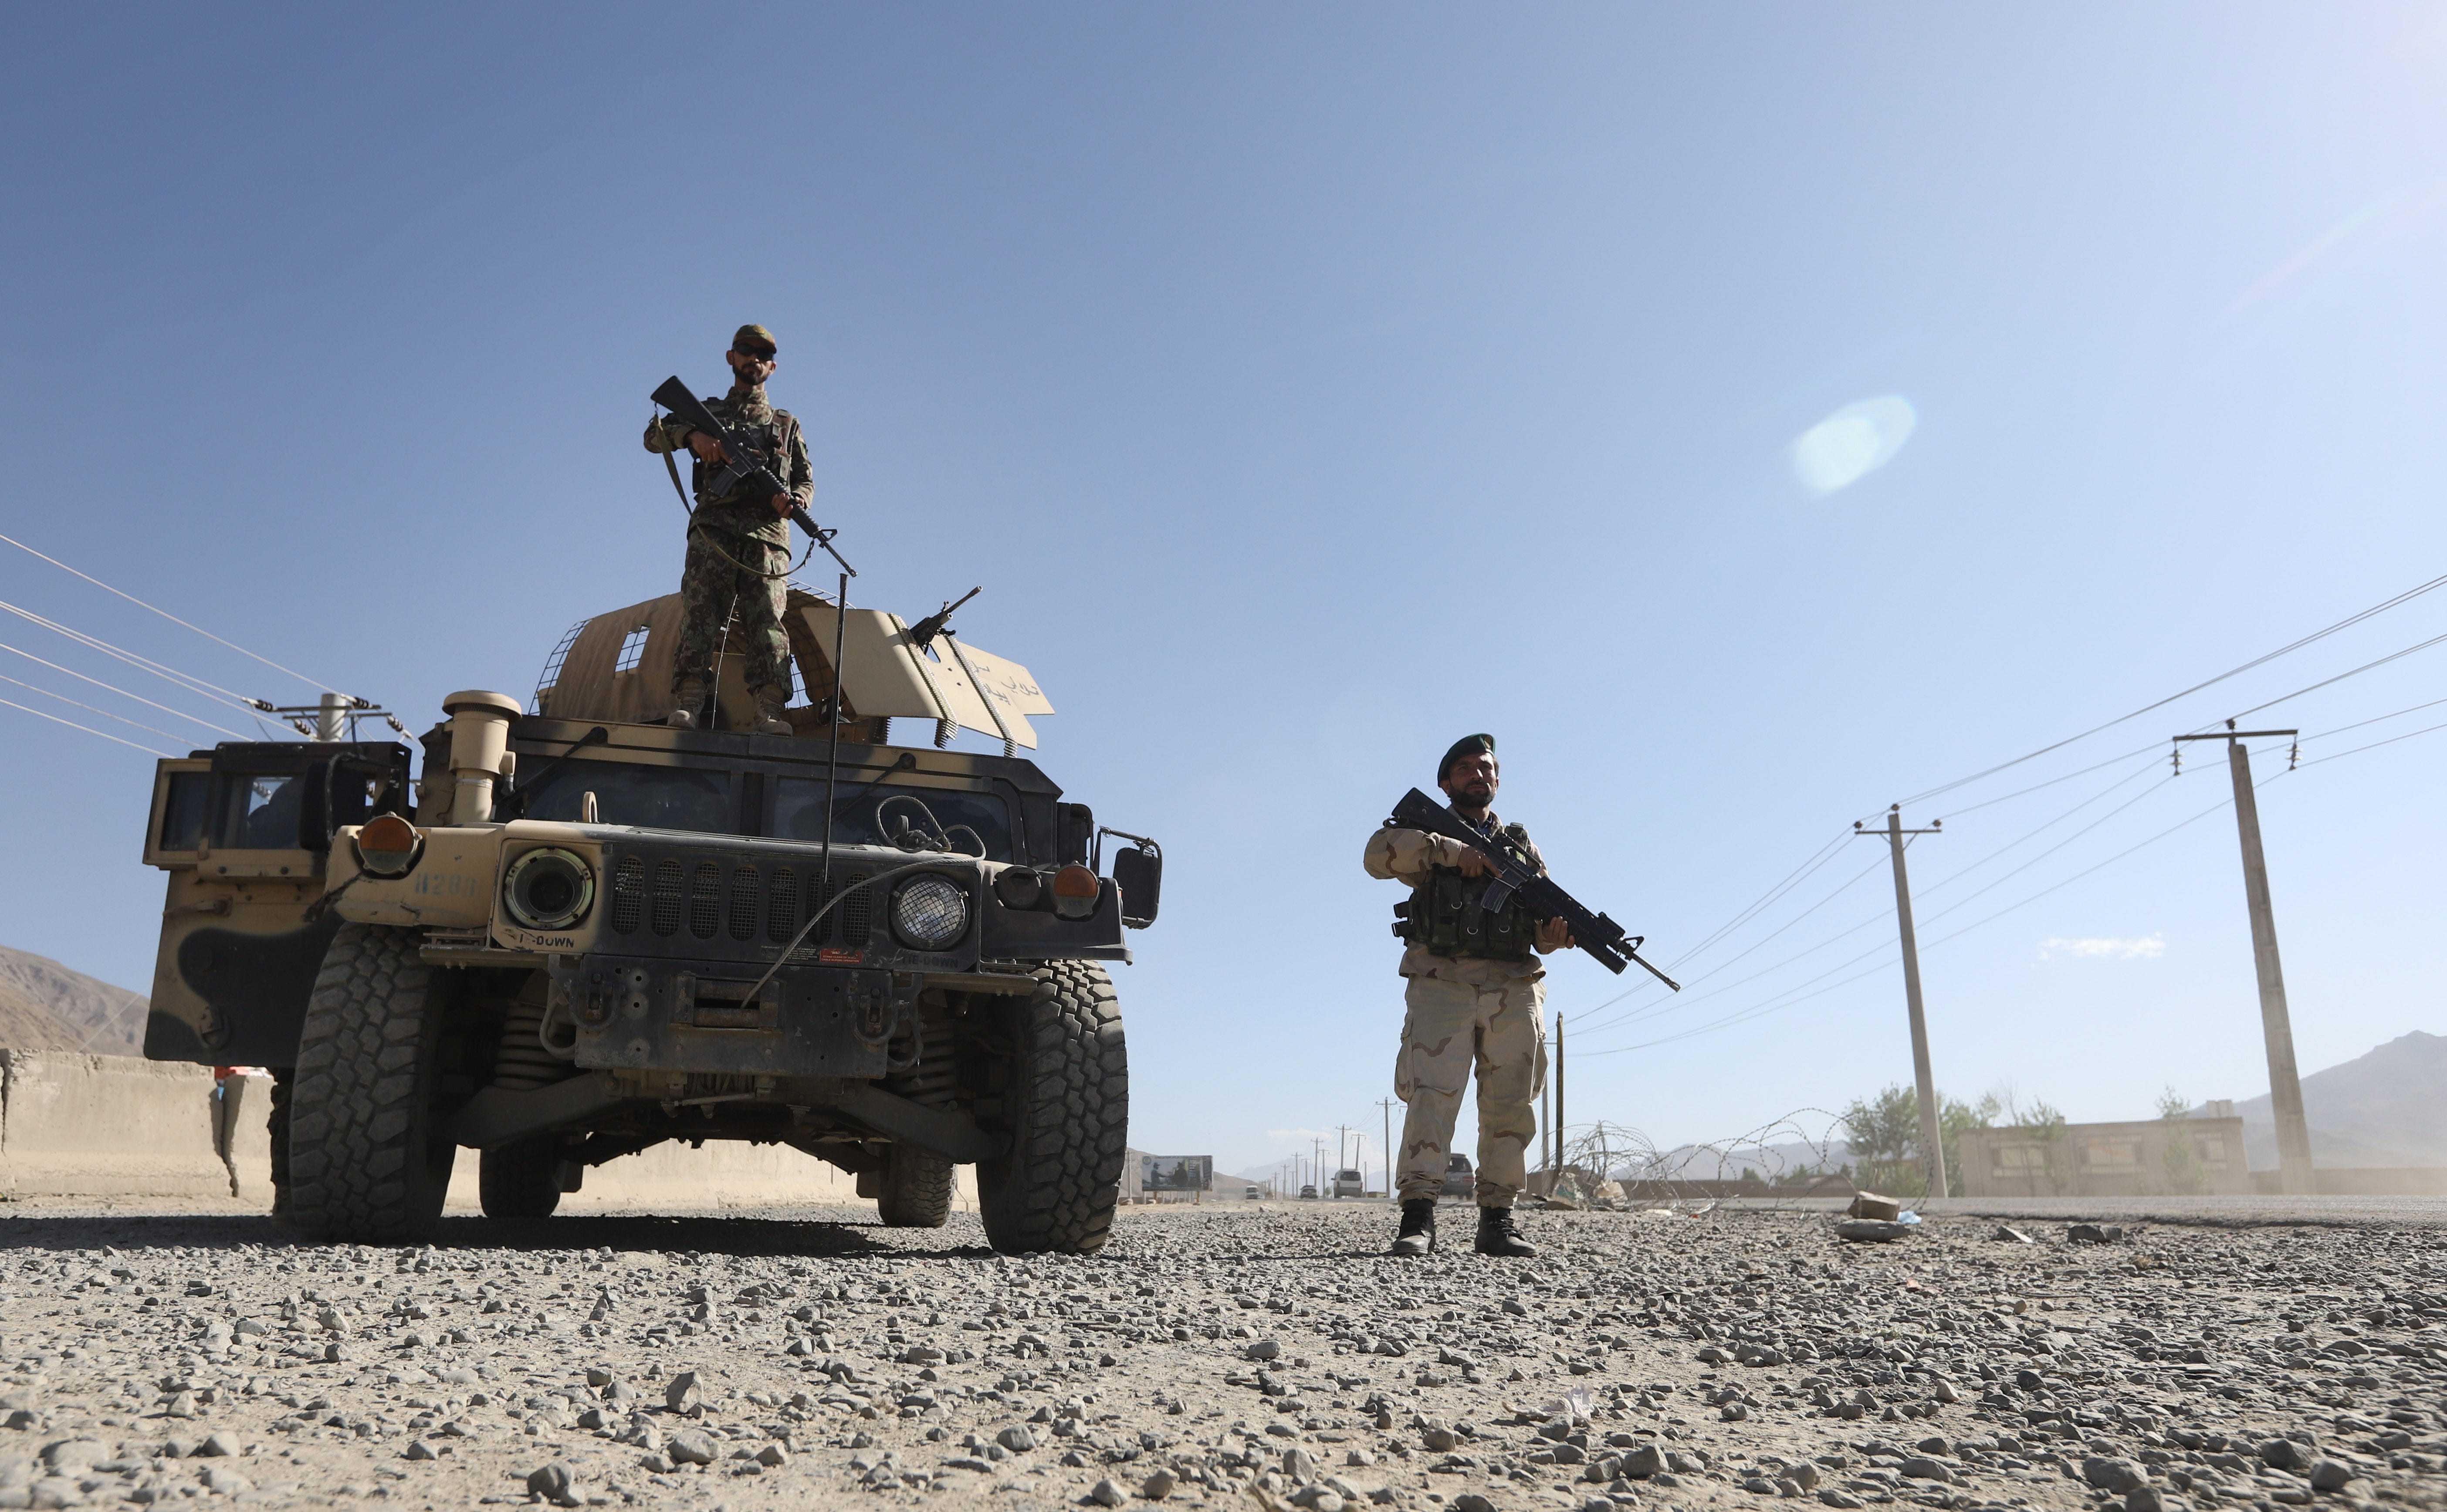 US service member killed in Afghanistan; 2nd in 6 days